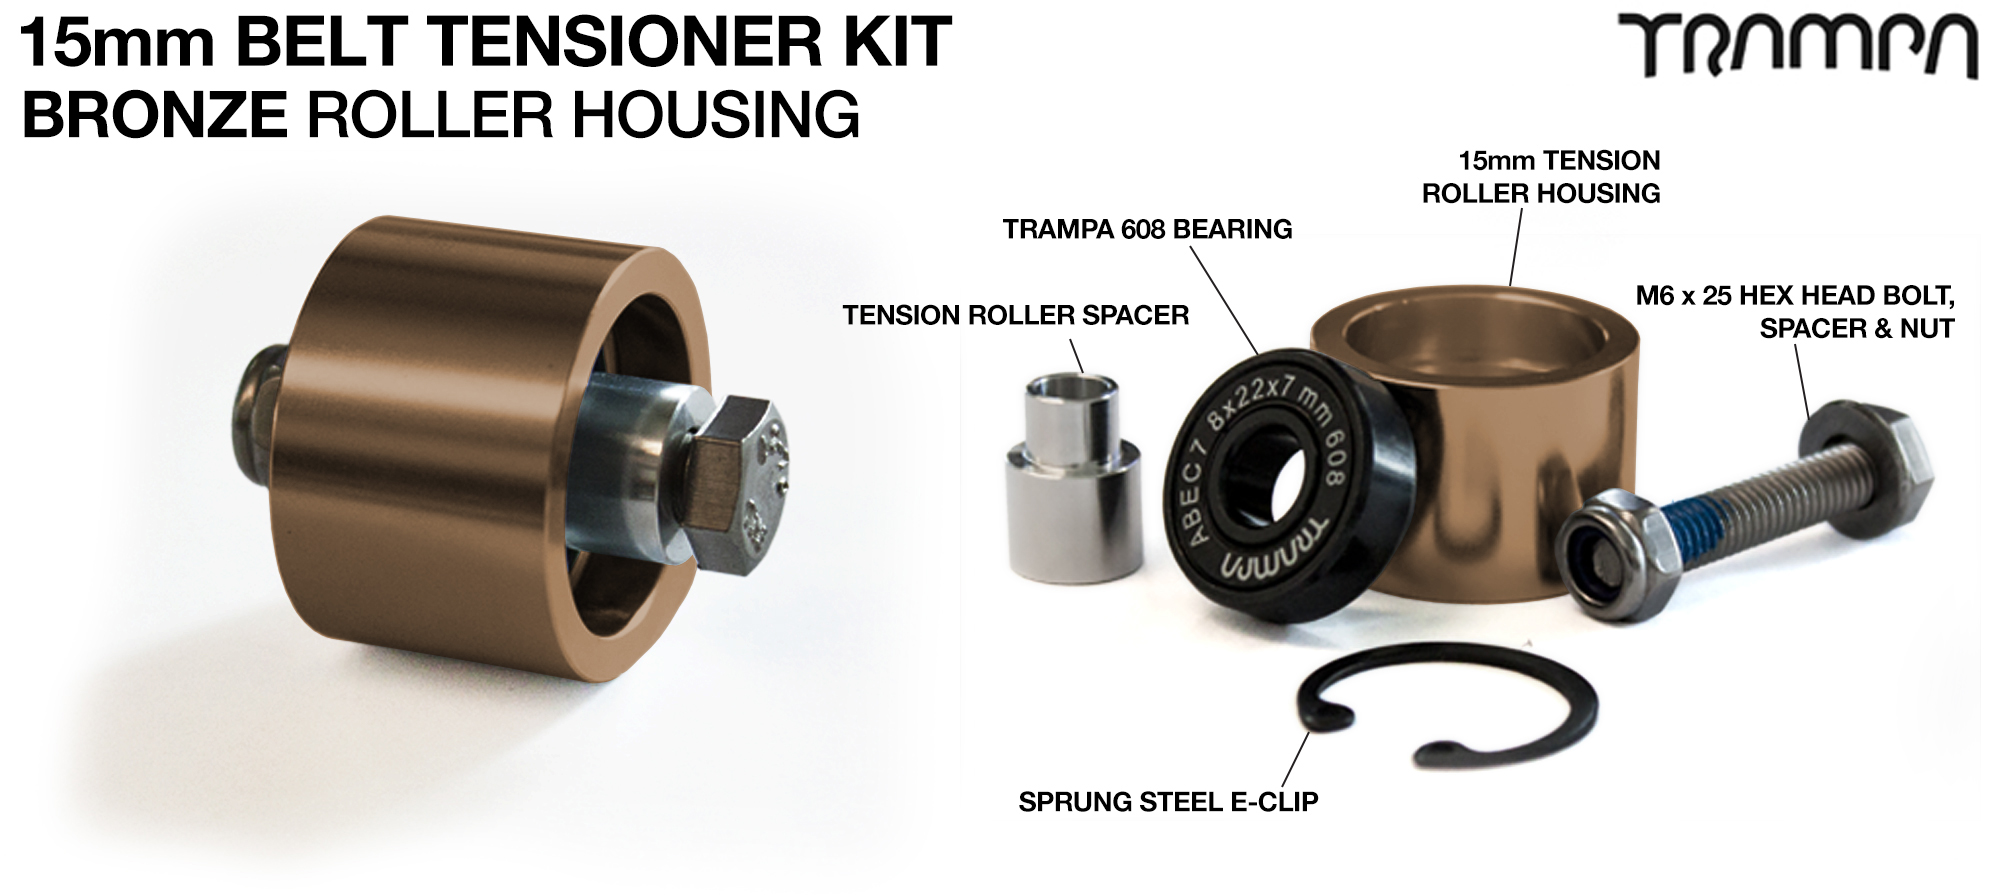 15mm Belt Tensioner - BRONZE